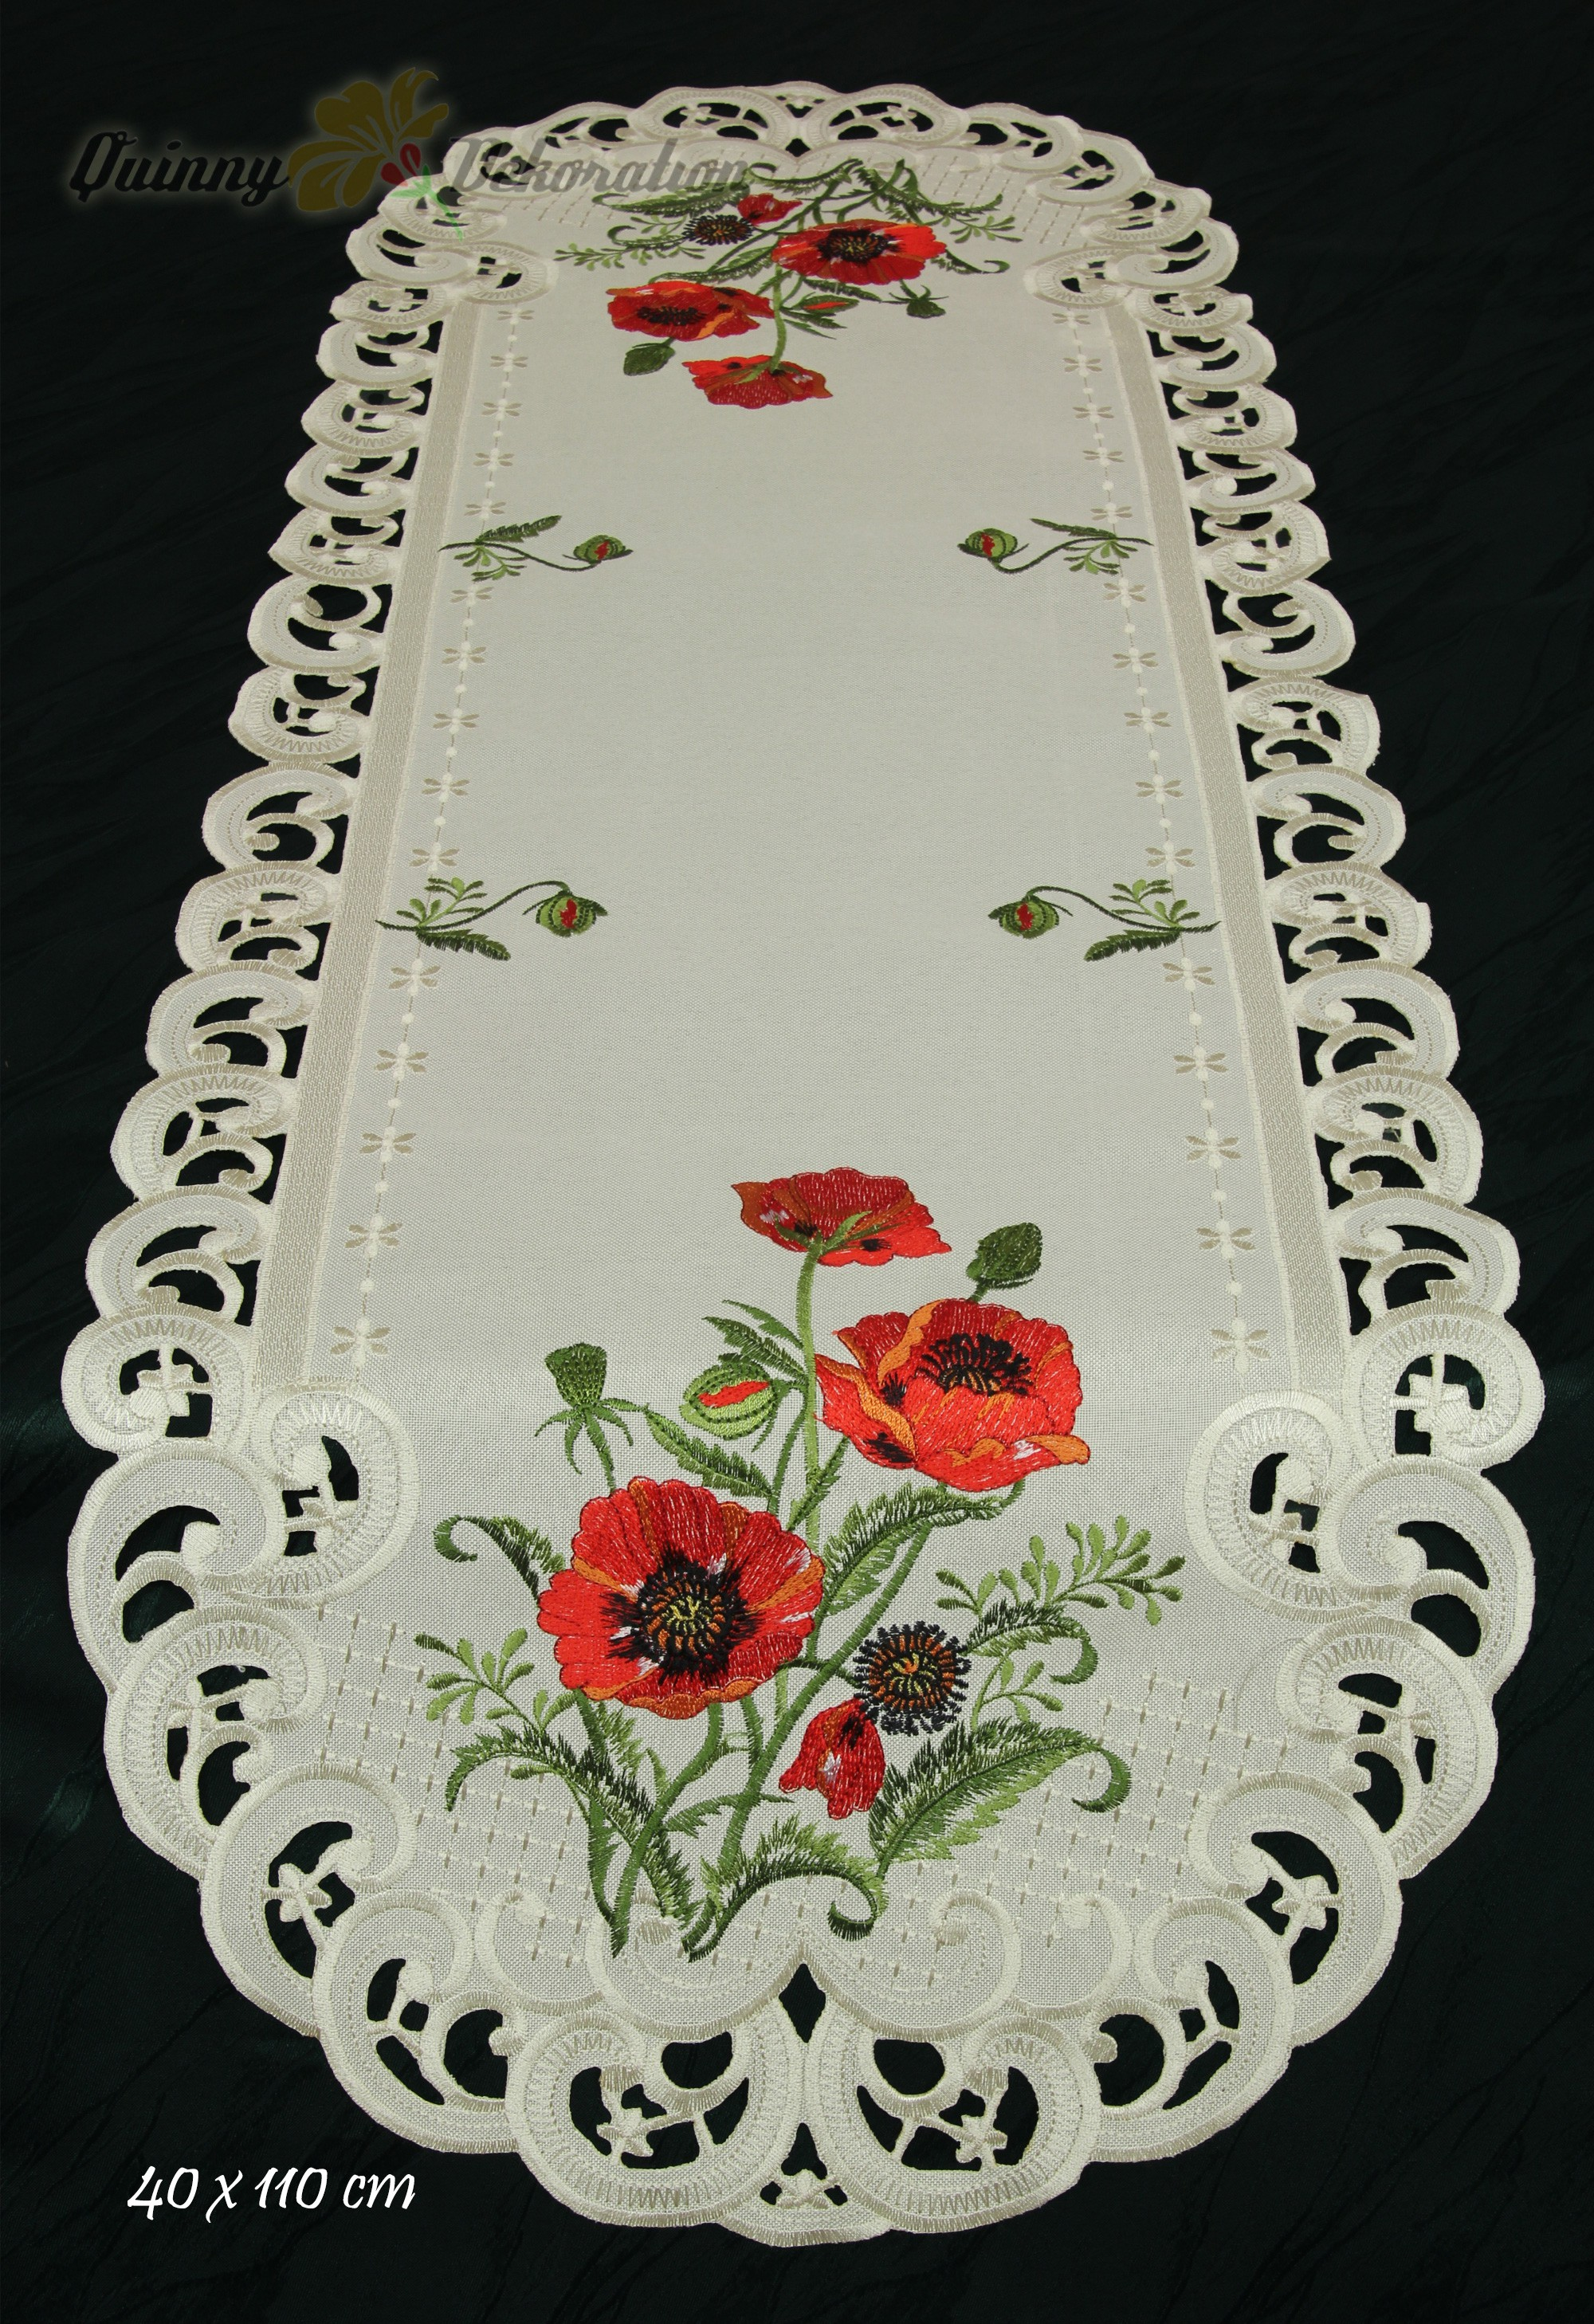 Red Poppy Doily Table Runner Tablecloth Linen Look Cream With Flower Embroidery